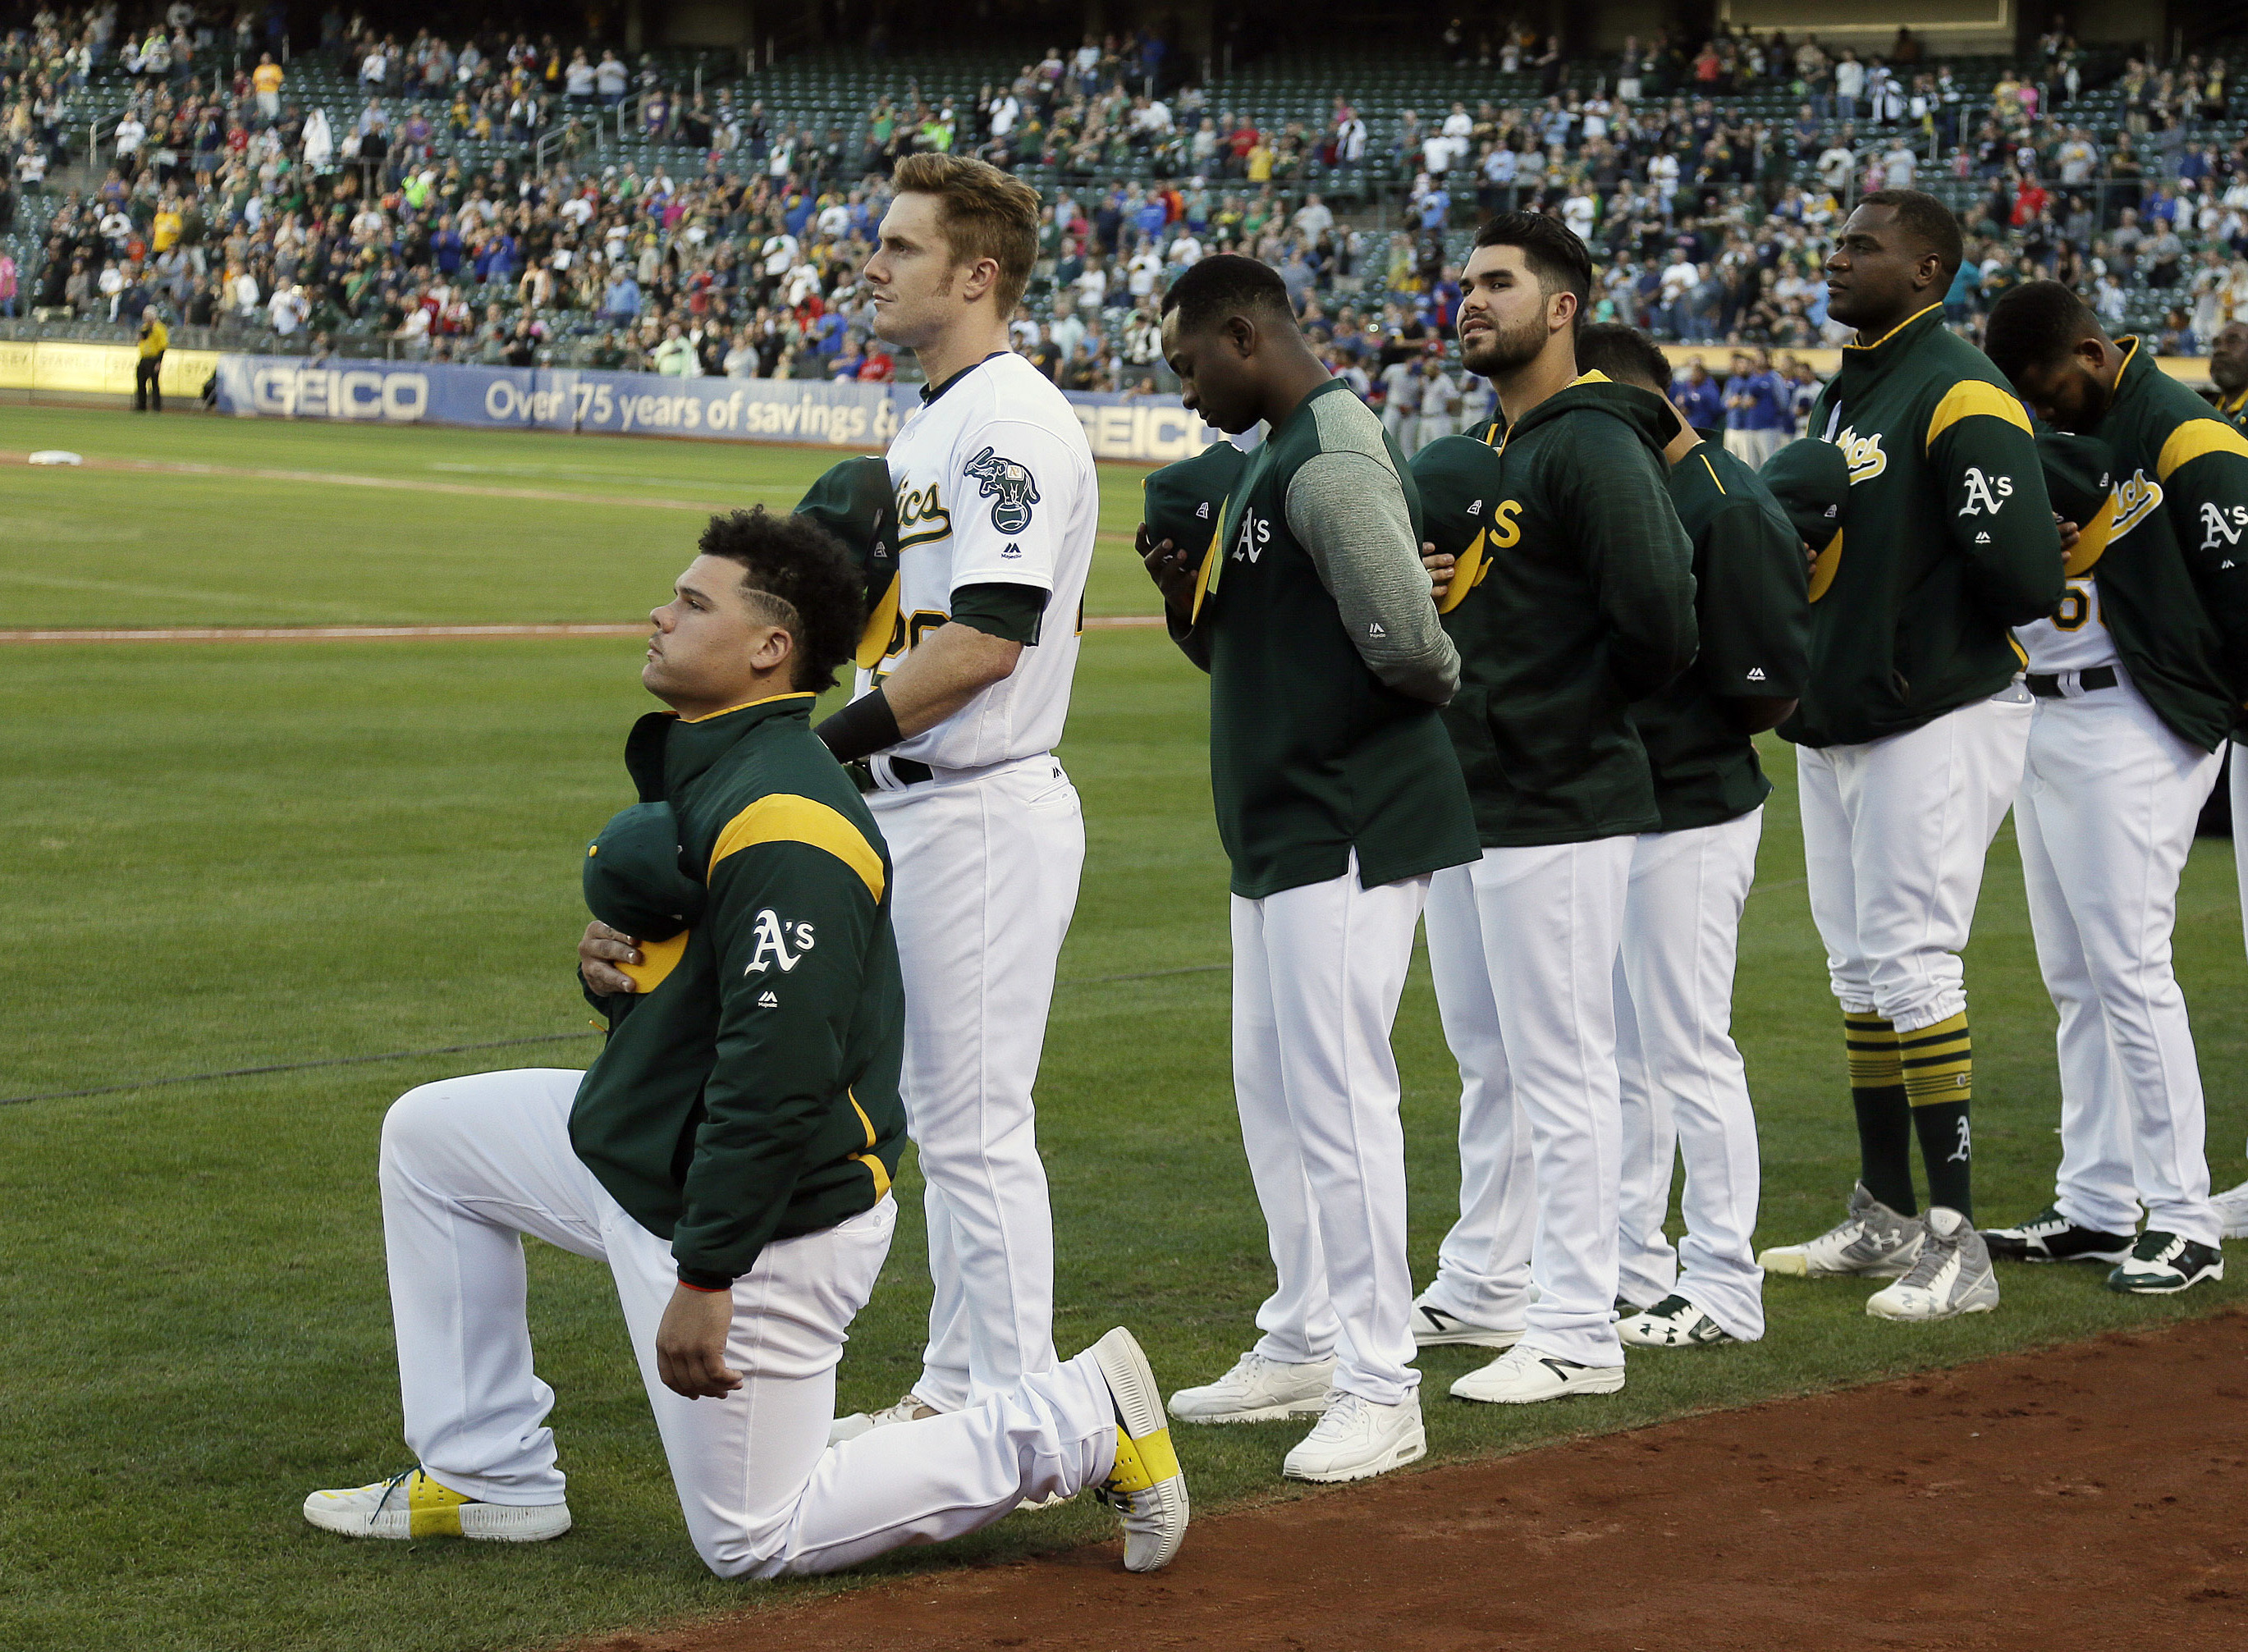 Oakland Athletics catcher Bruce Maxwell kneels during the national anthem Saturday in Oakland. Maxwell is the first Major League Baseball player to kneel during the national anthem. (Eric Risberg/AP)